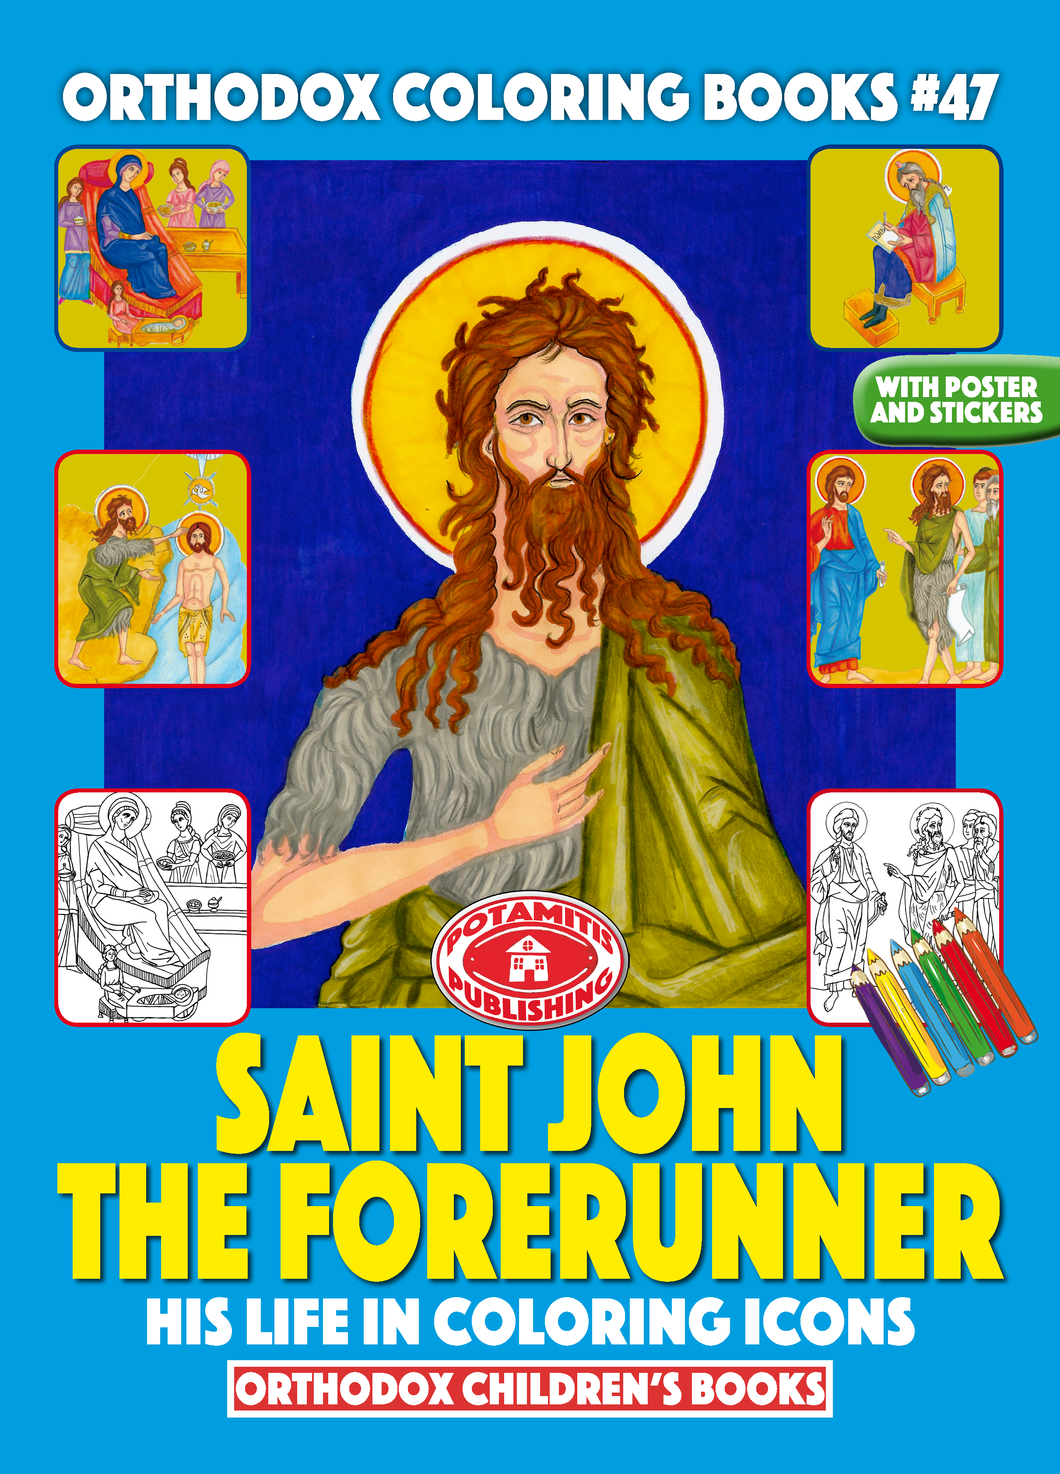 Orthodox Coloring Books #47 - Saint John the Forerunner in Coloring Icons, with poster and stickers